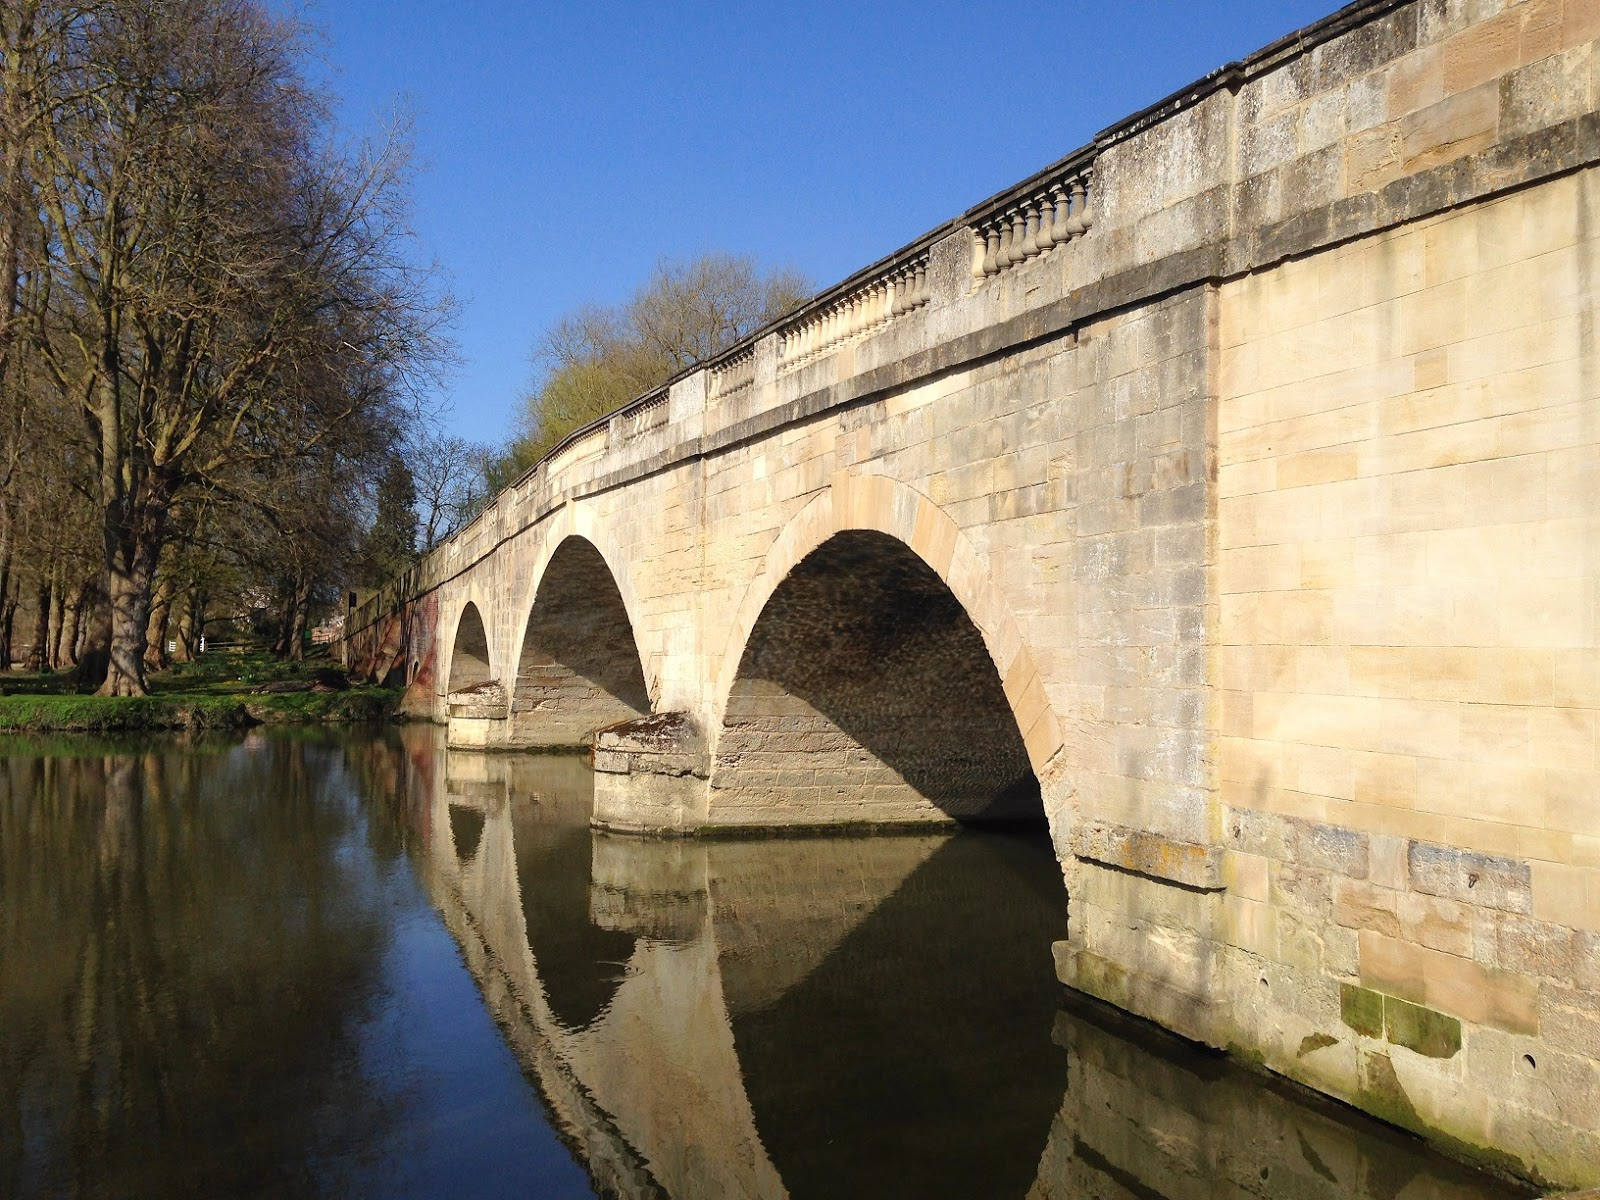 Shillingford Bridge over the River Thames, Oxfordshire